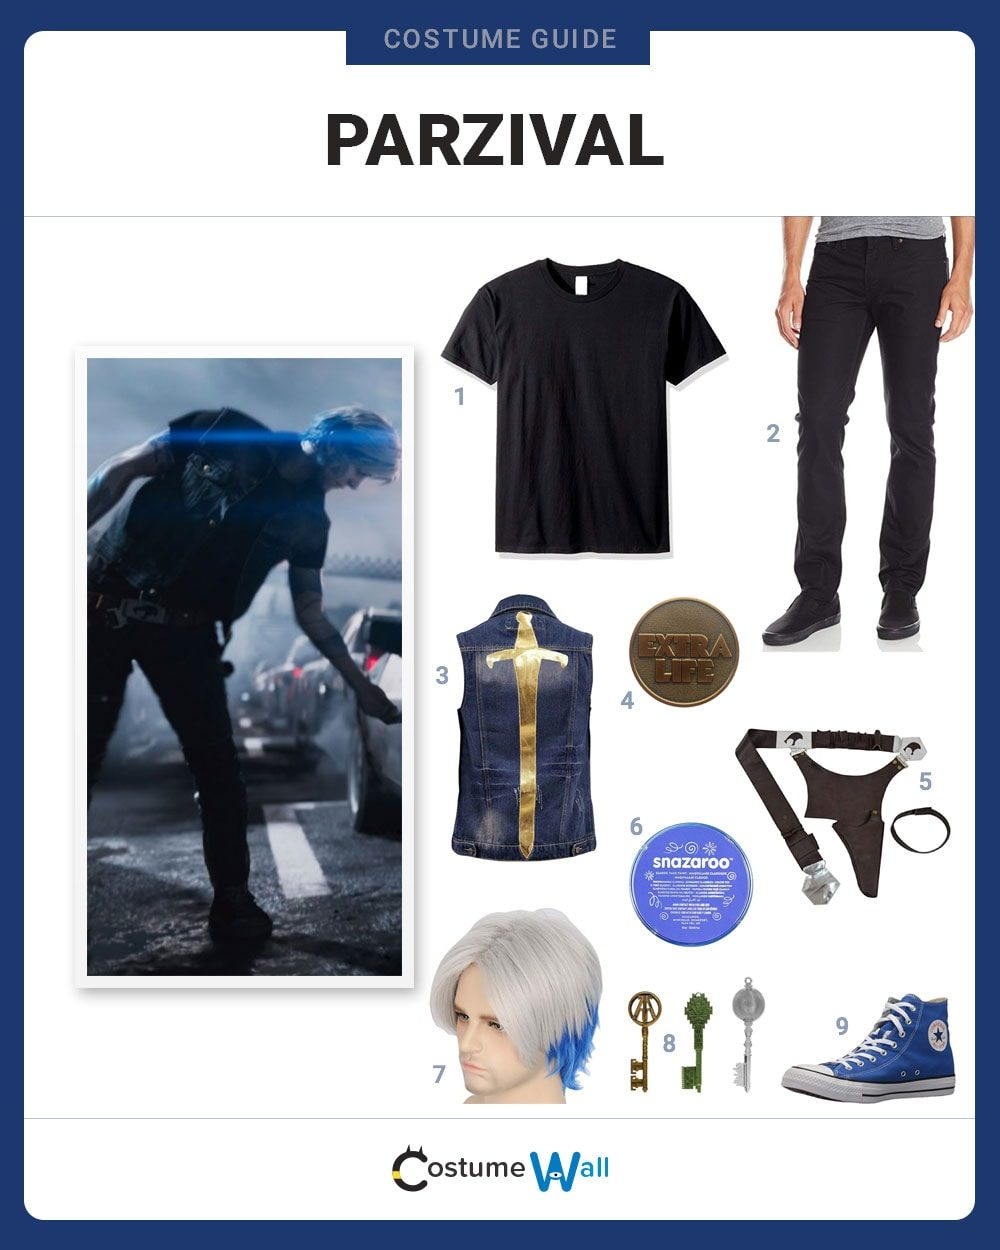 Parzival Costume Guide